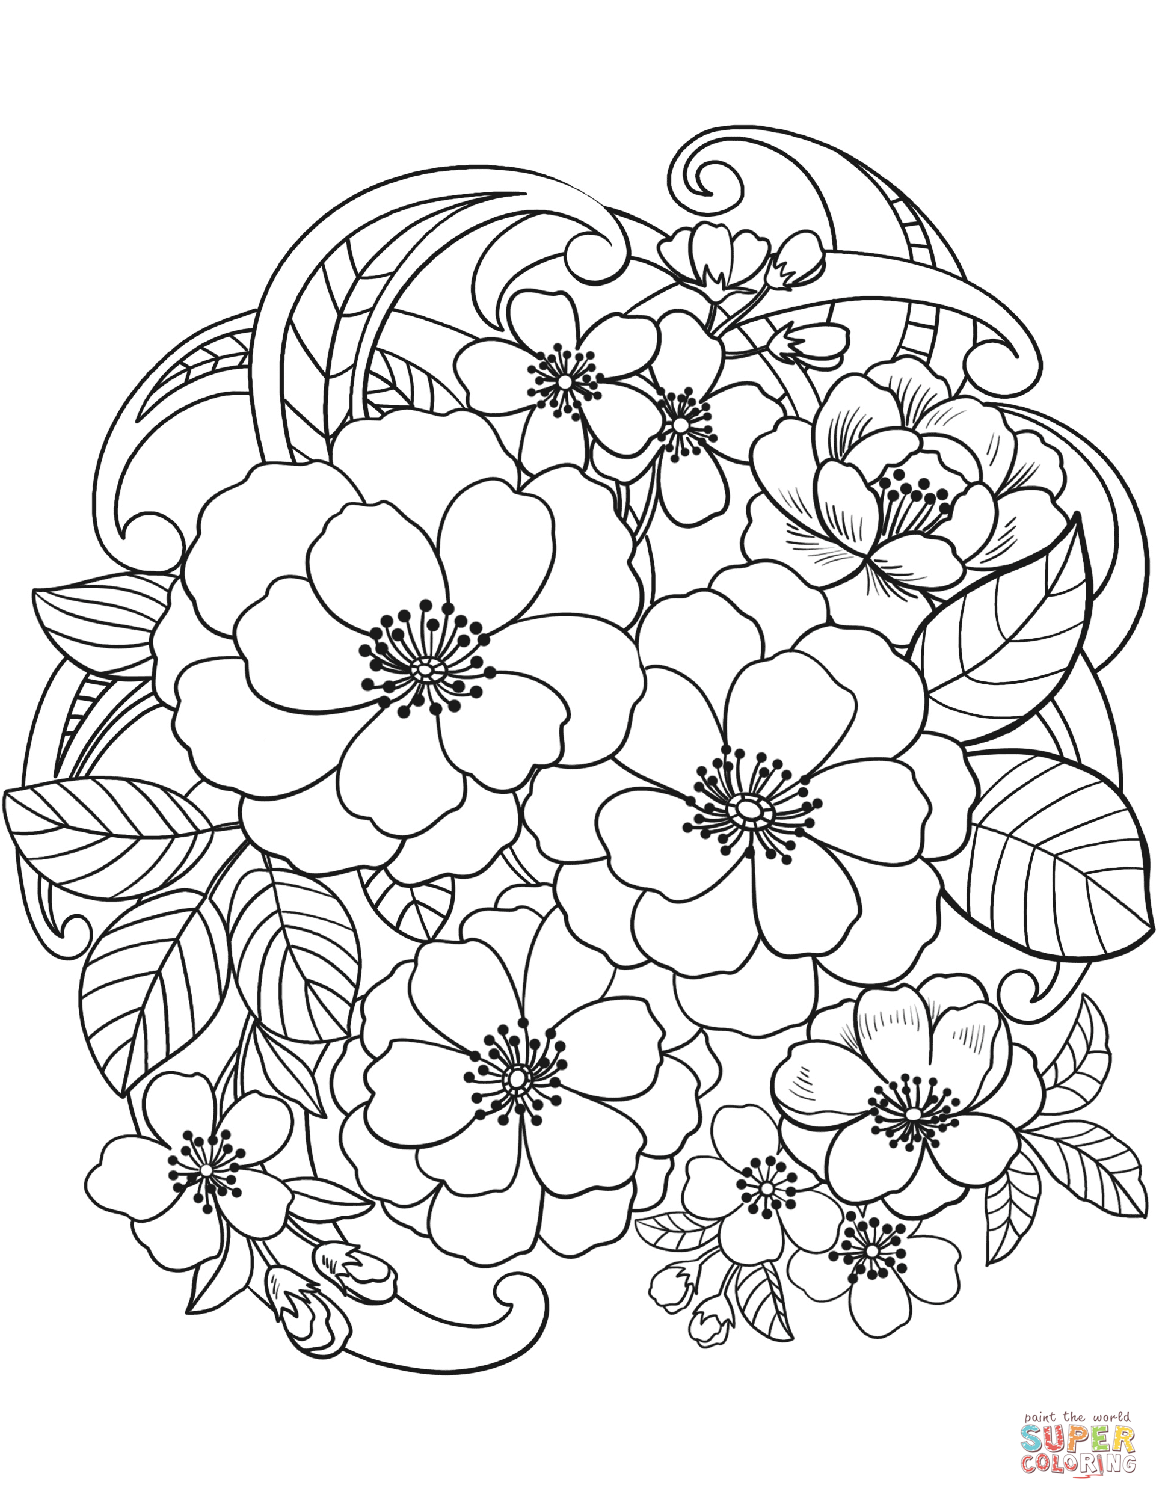 Blooming Flowers coloring page   Free Printable Coloring Pages ...